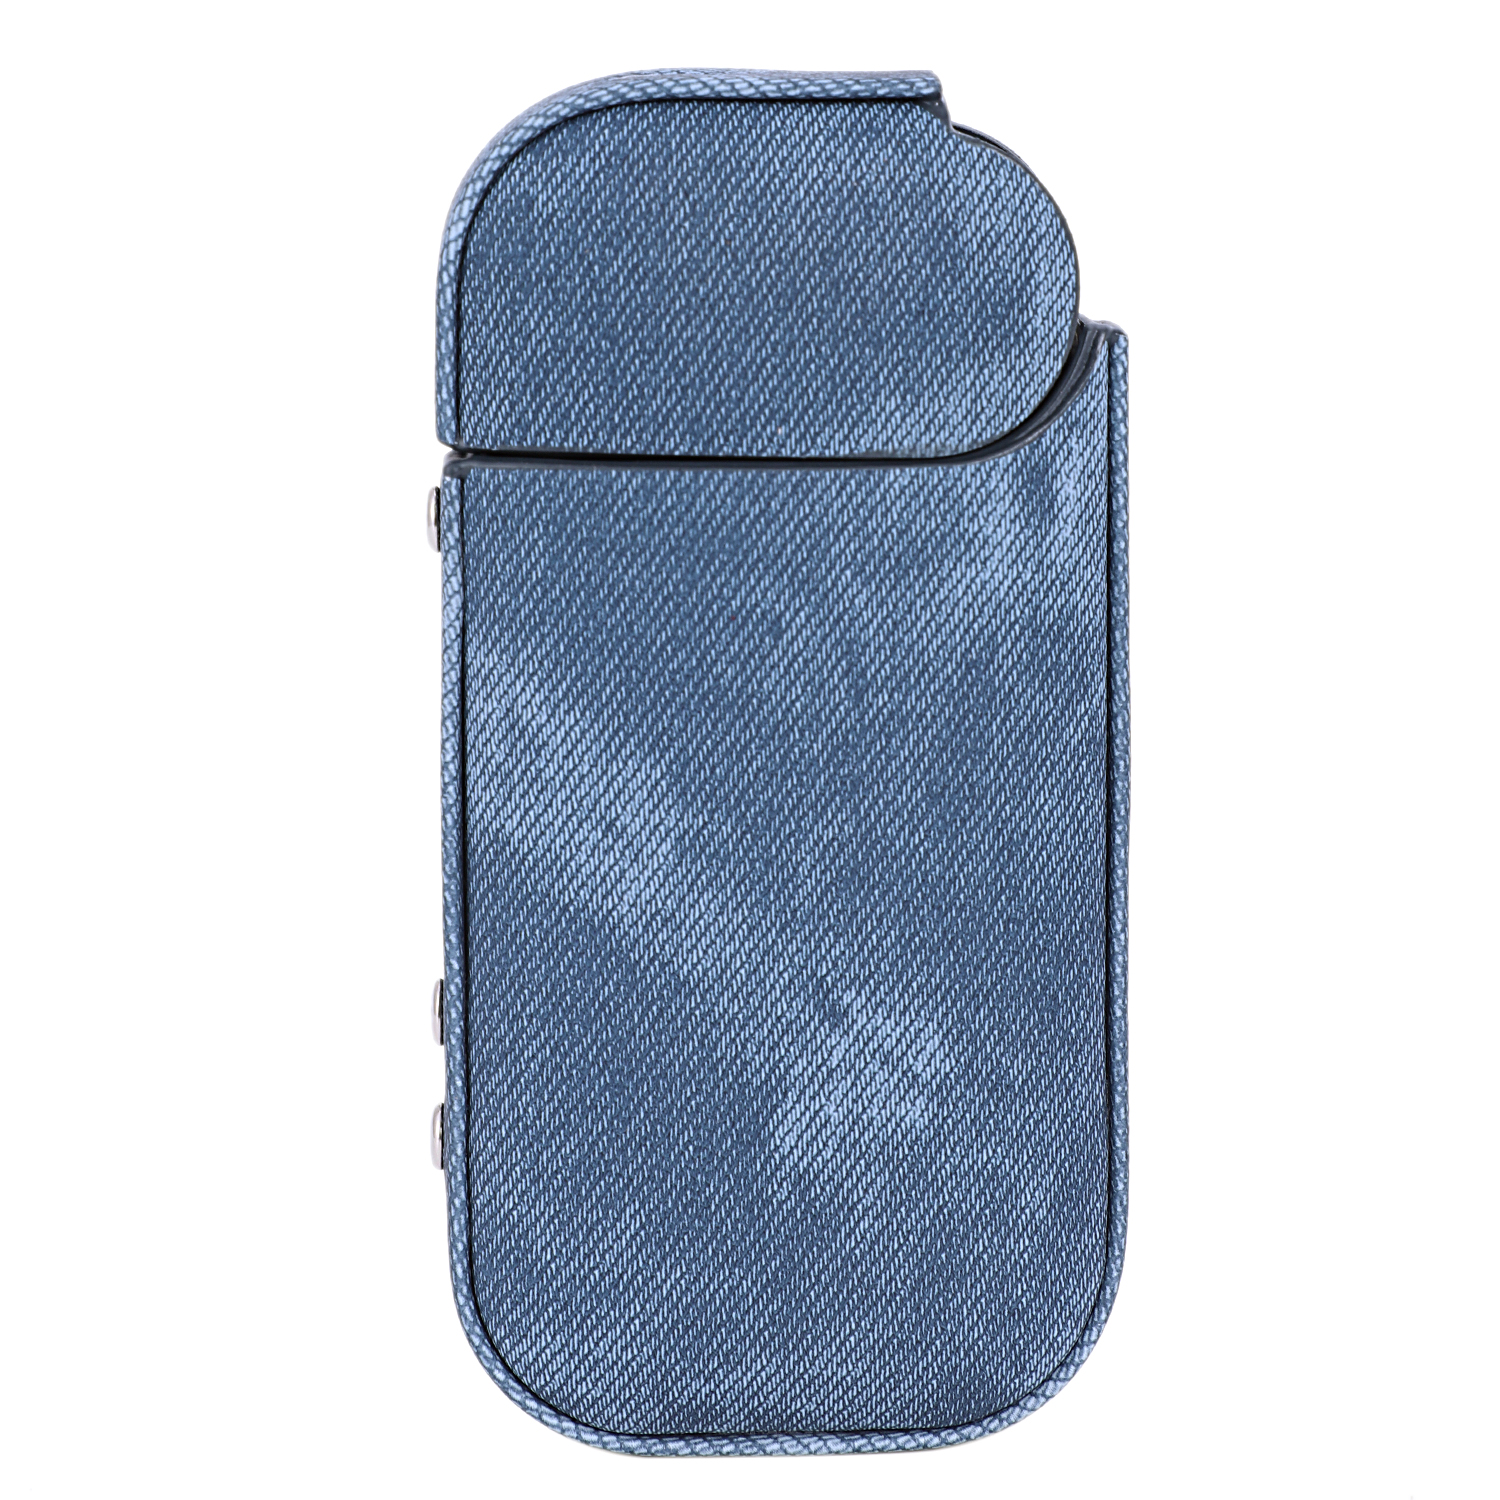 Hard Case for IQOS Anti Scratch Carrying Denim Protective Cover for iqos Electronic Cigarette Accessories Pouch Bag(dark blue)